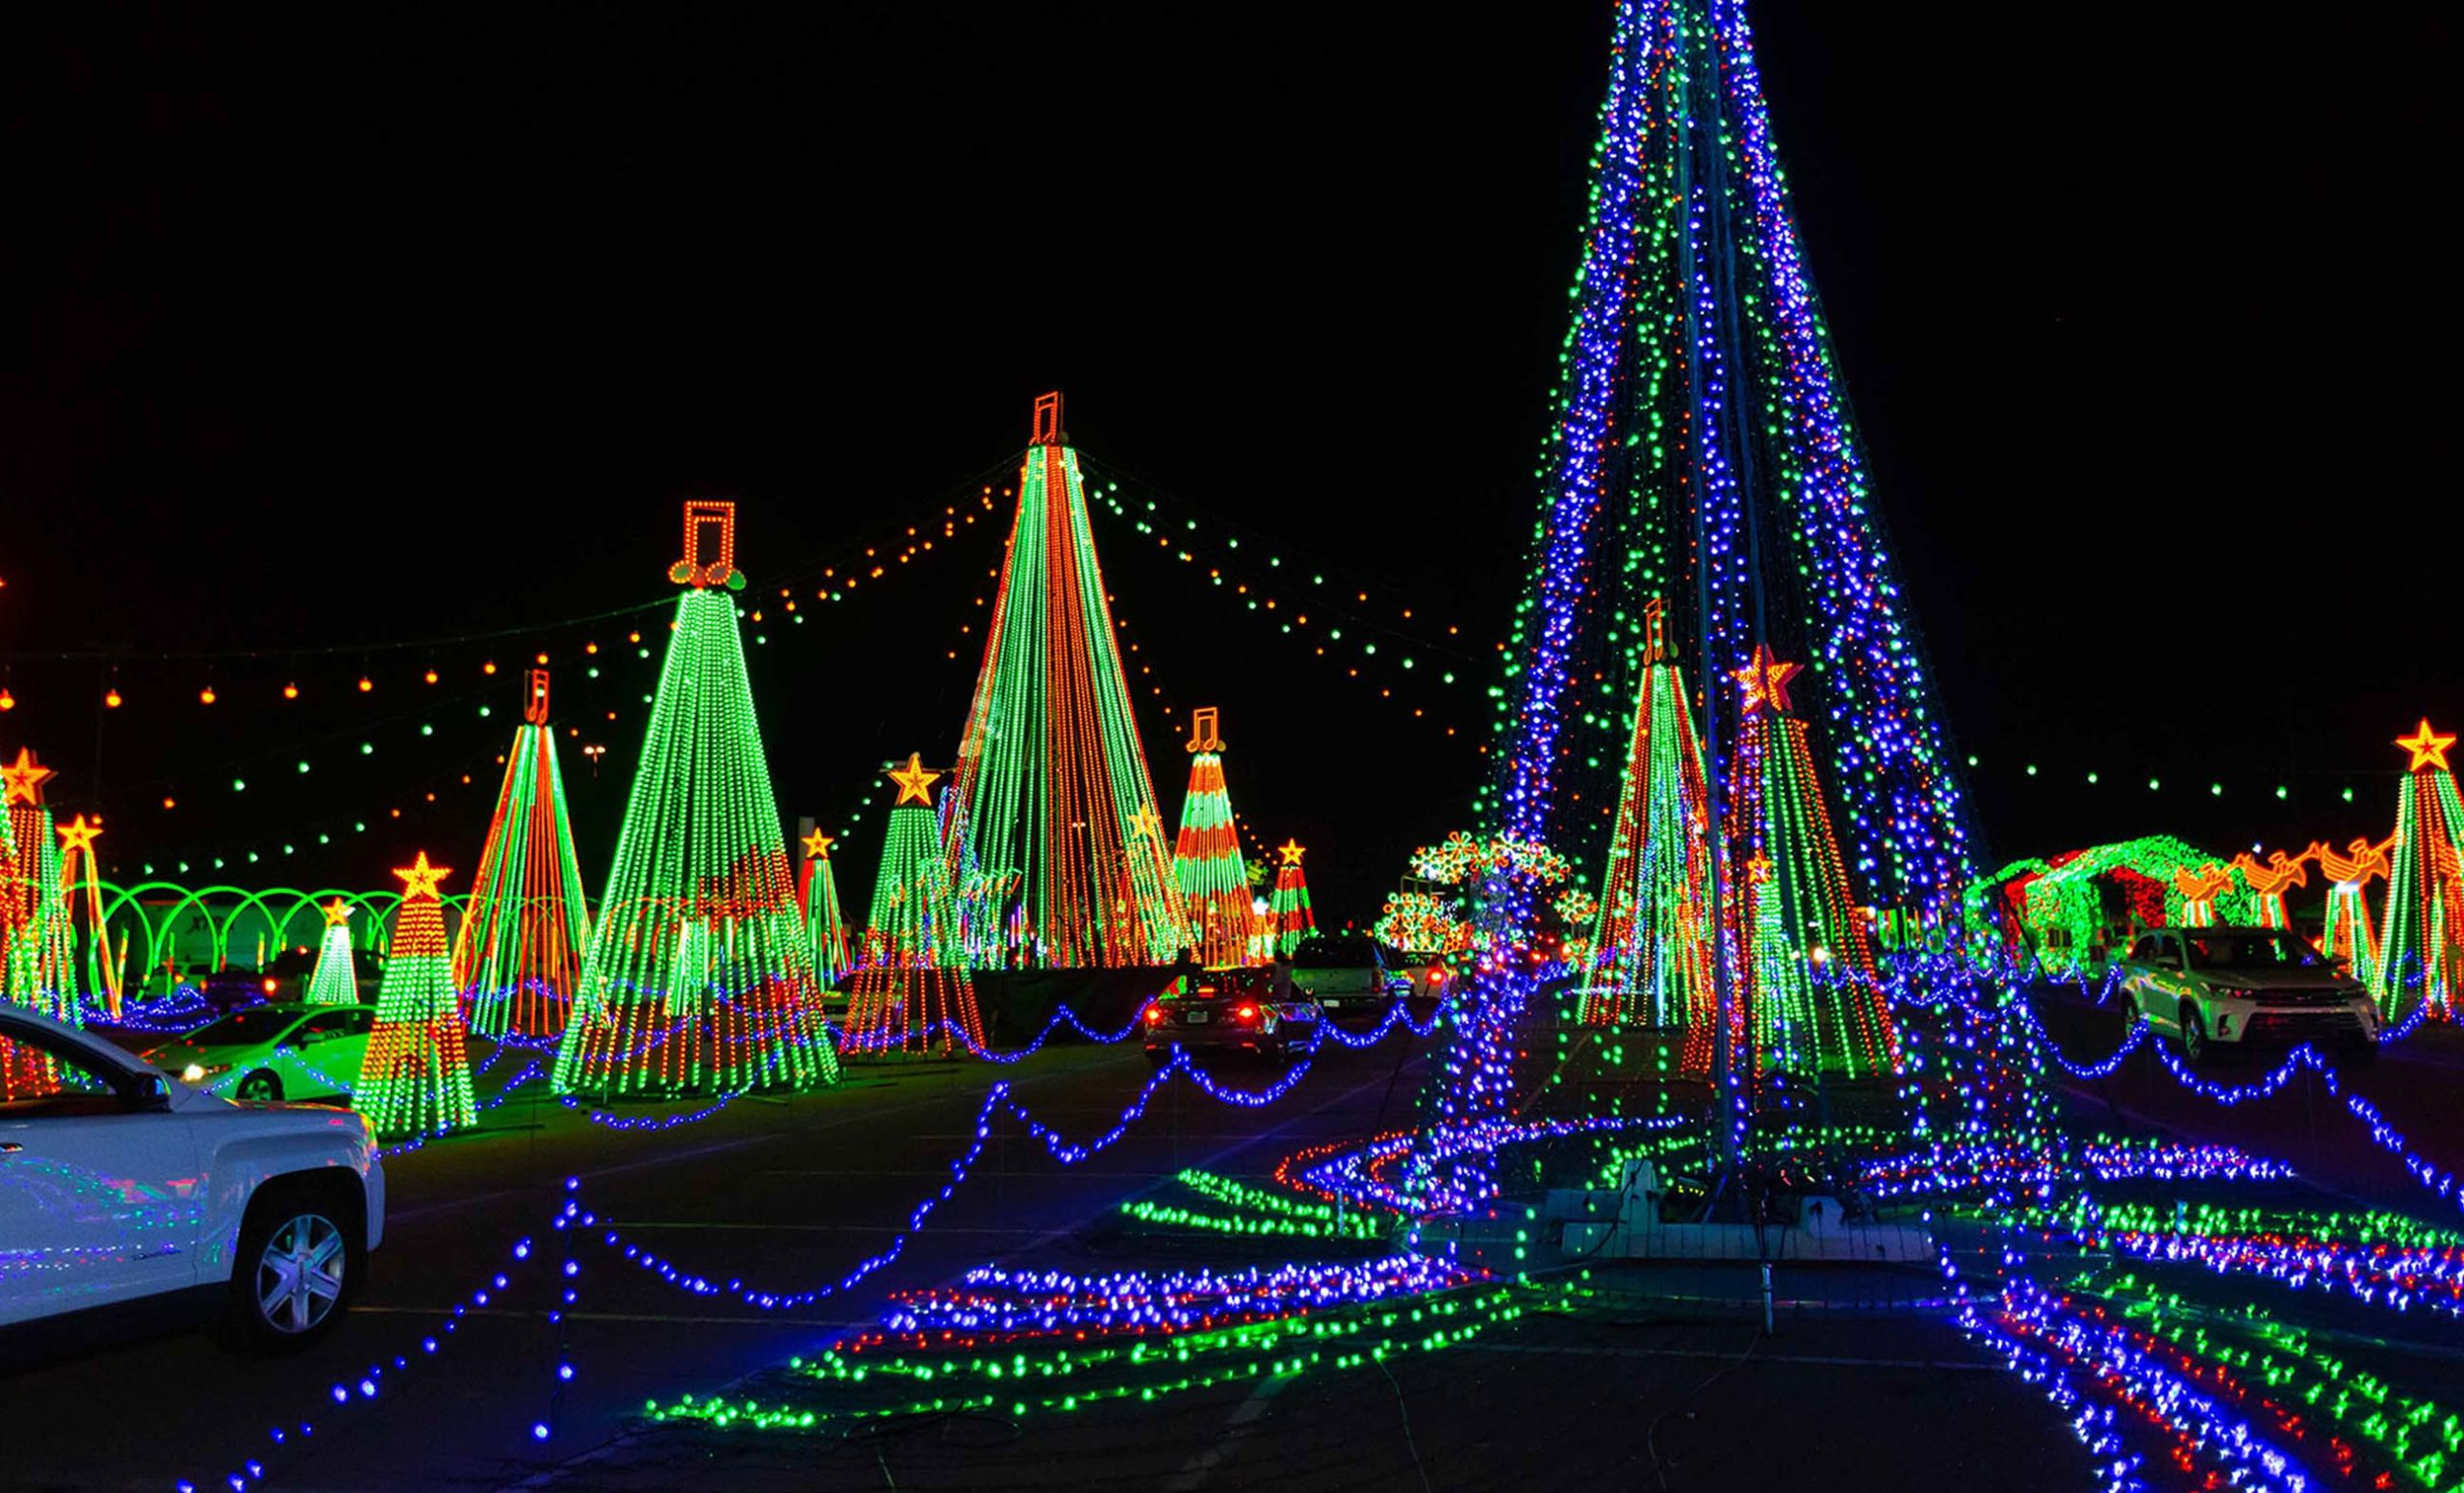 World of Illumination's All-New Theme Park Ushers in Much-Needed Holiday Cheer